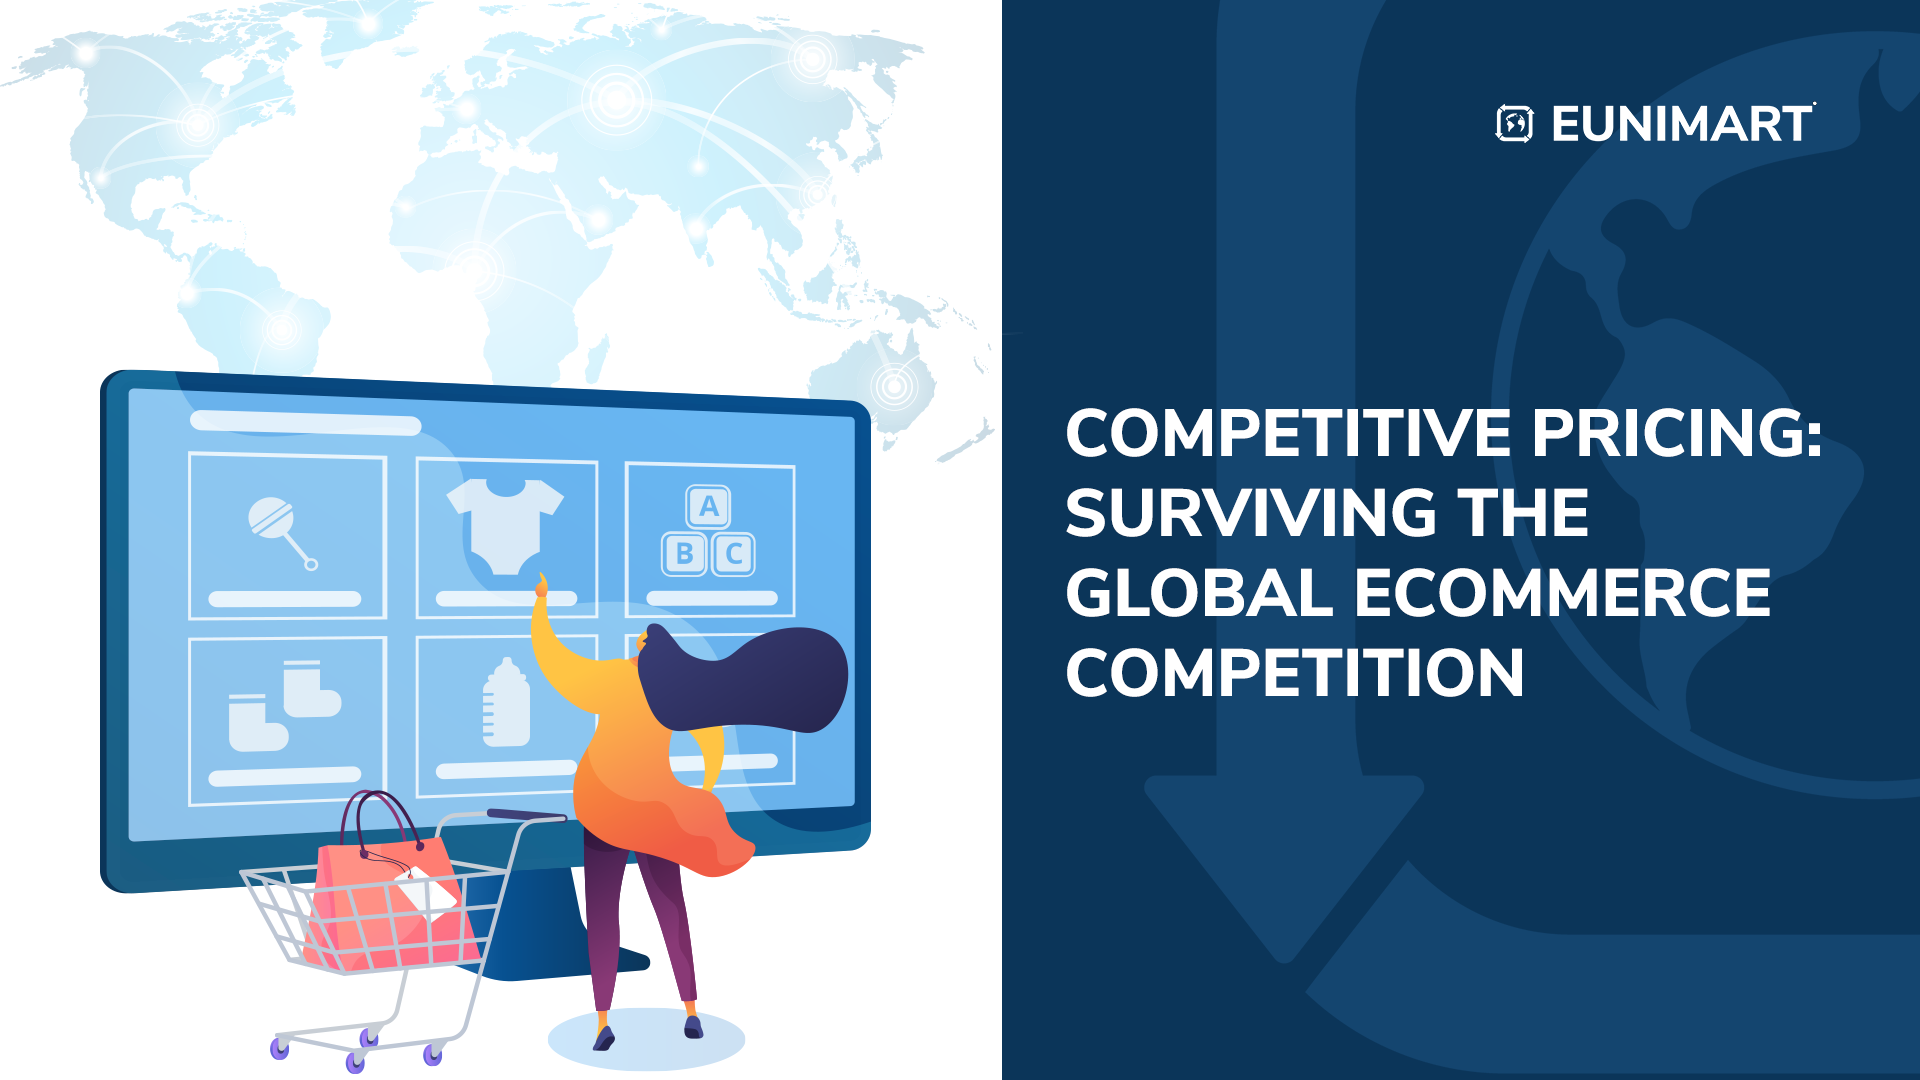 Competitive Pricing: Surviving the Global Ecommerce Competition